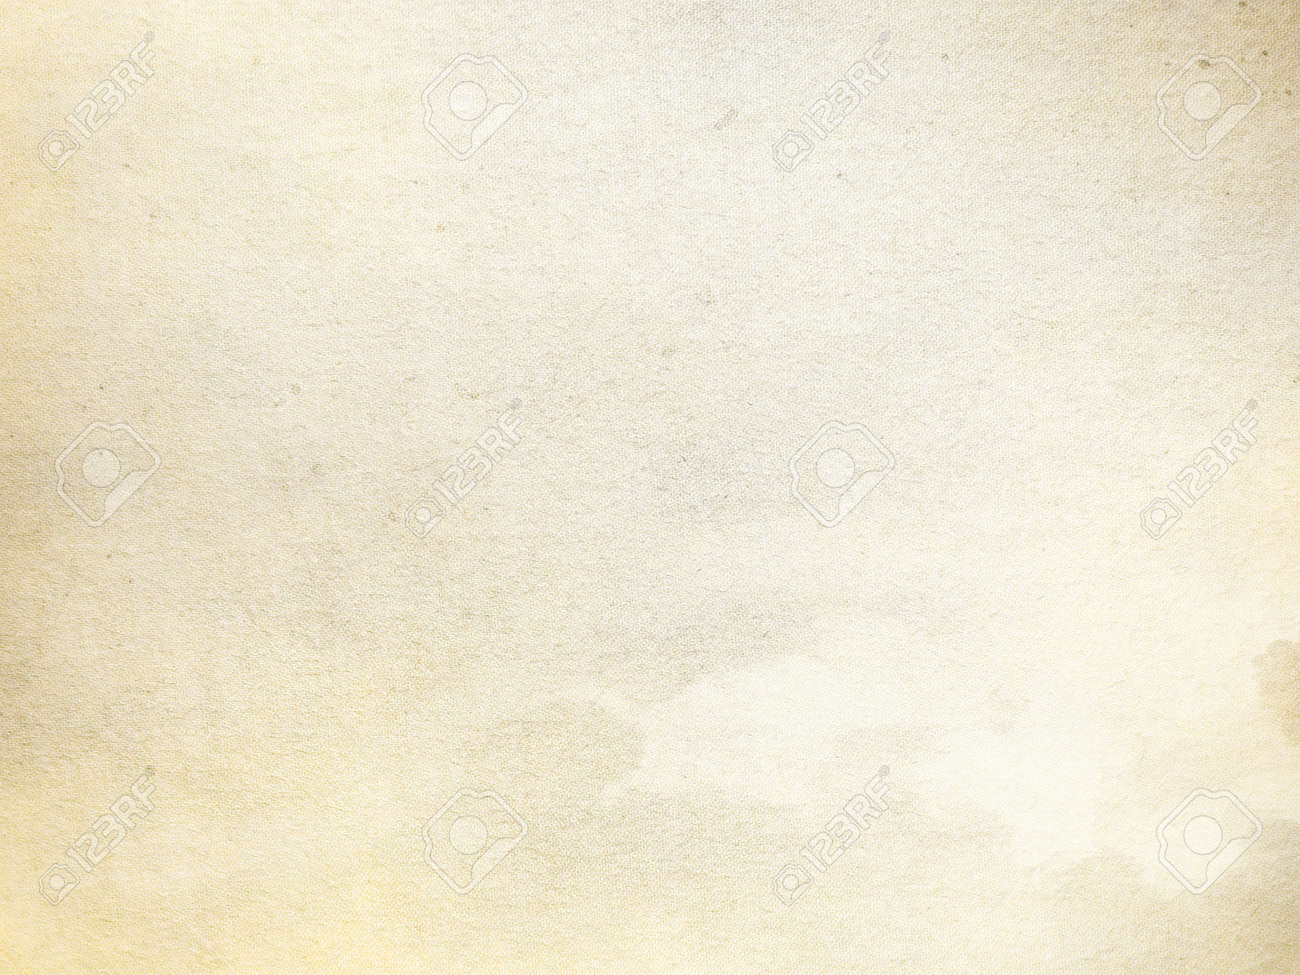 Old Parchment Paper Texture Background, Beige Paper Background ...